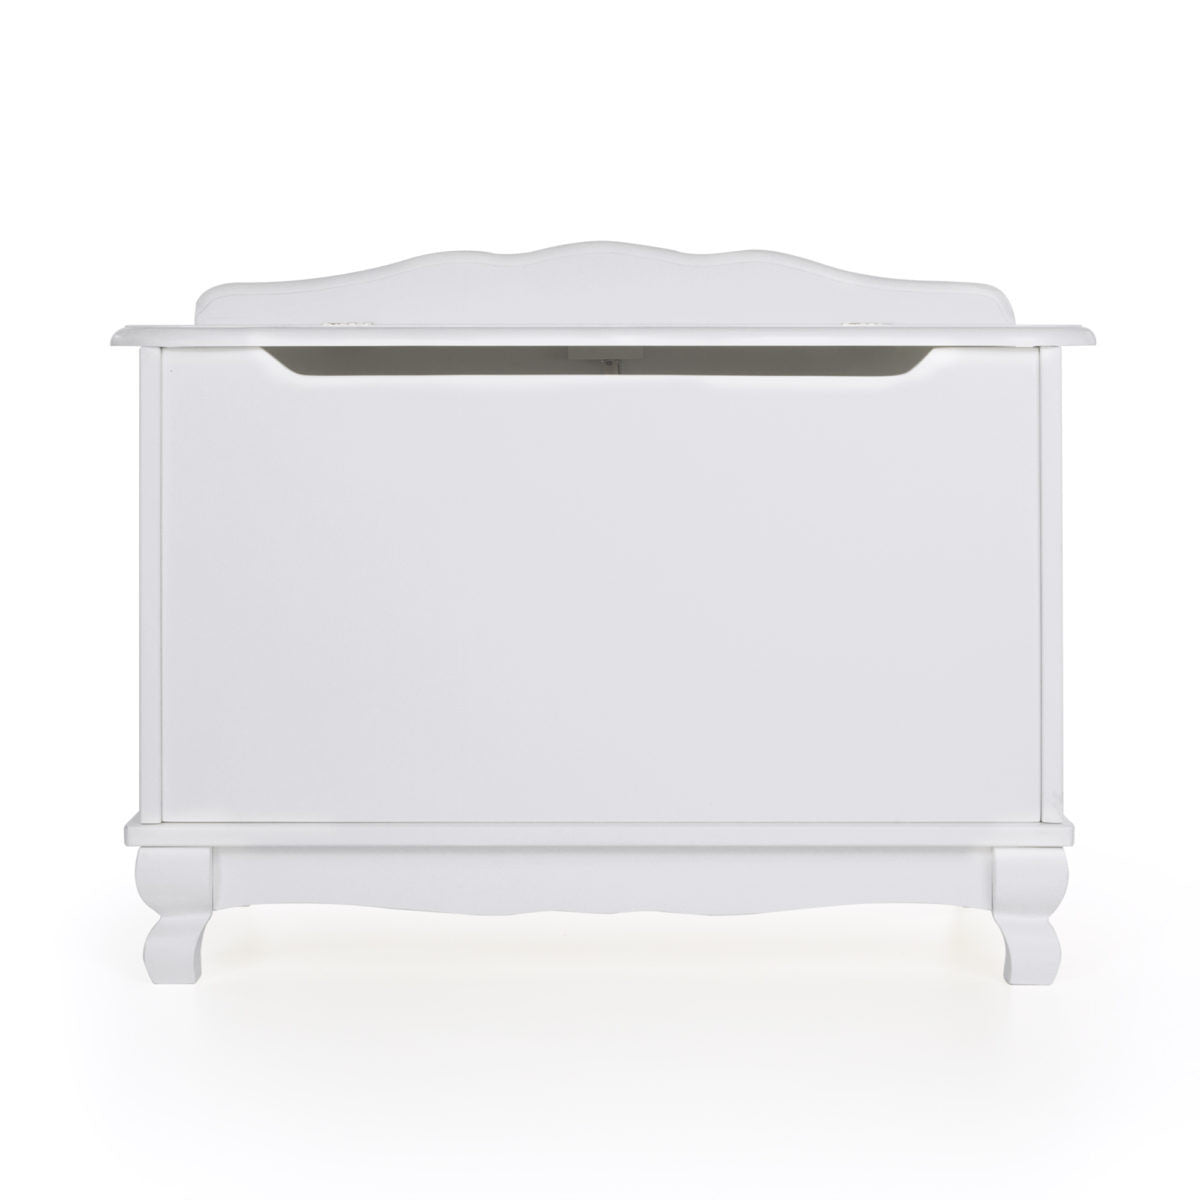 Guidecraft Classic Toy Box - fawn&forest